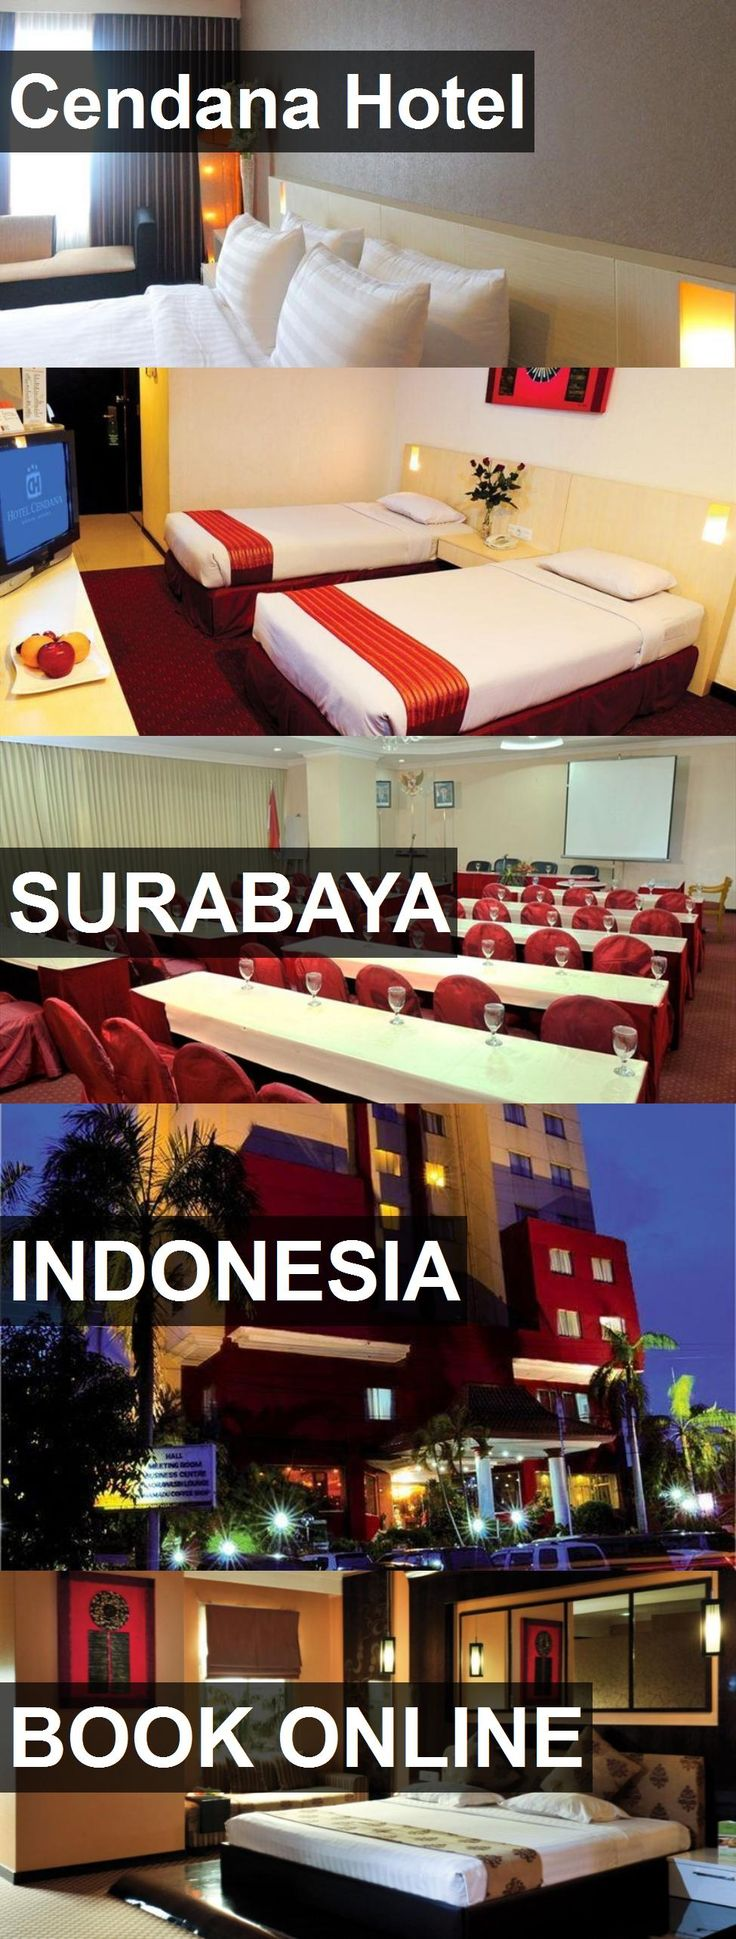 Hotel Cendana In Surabaya Indonesia For More Information Photos Reviews And